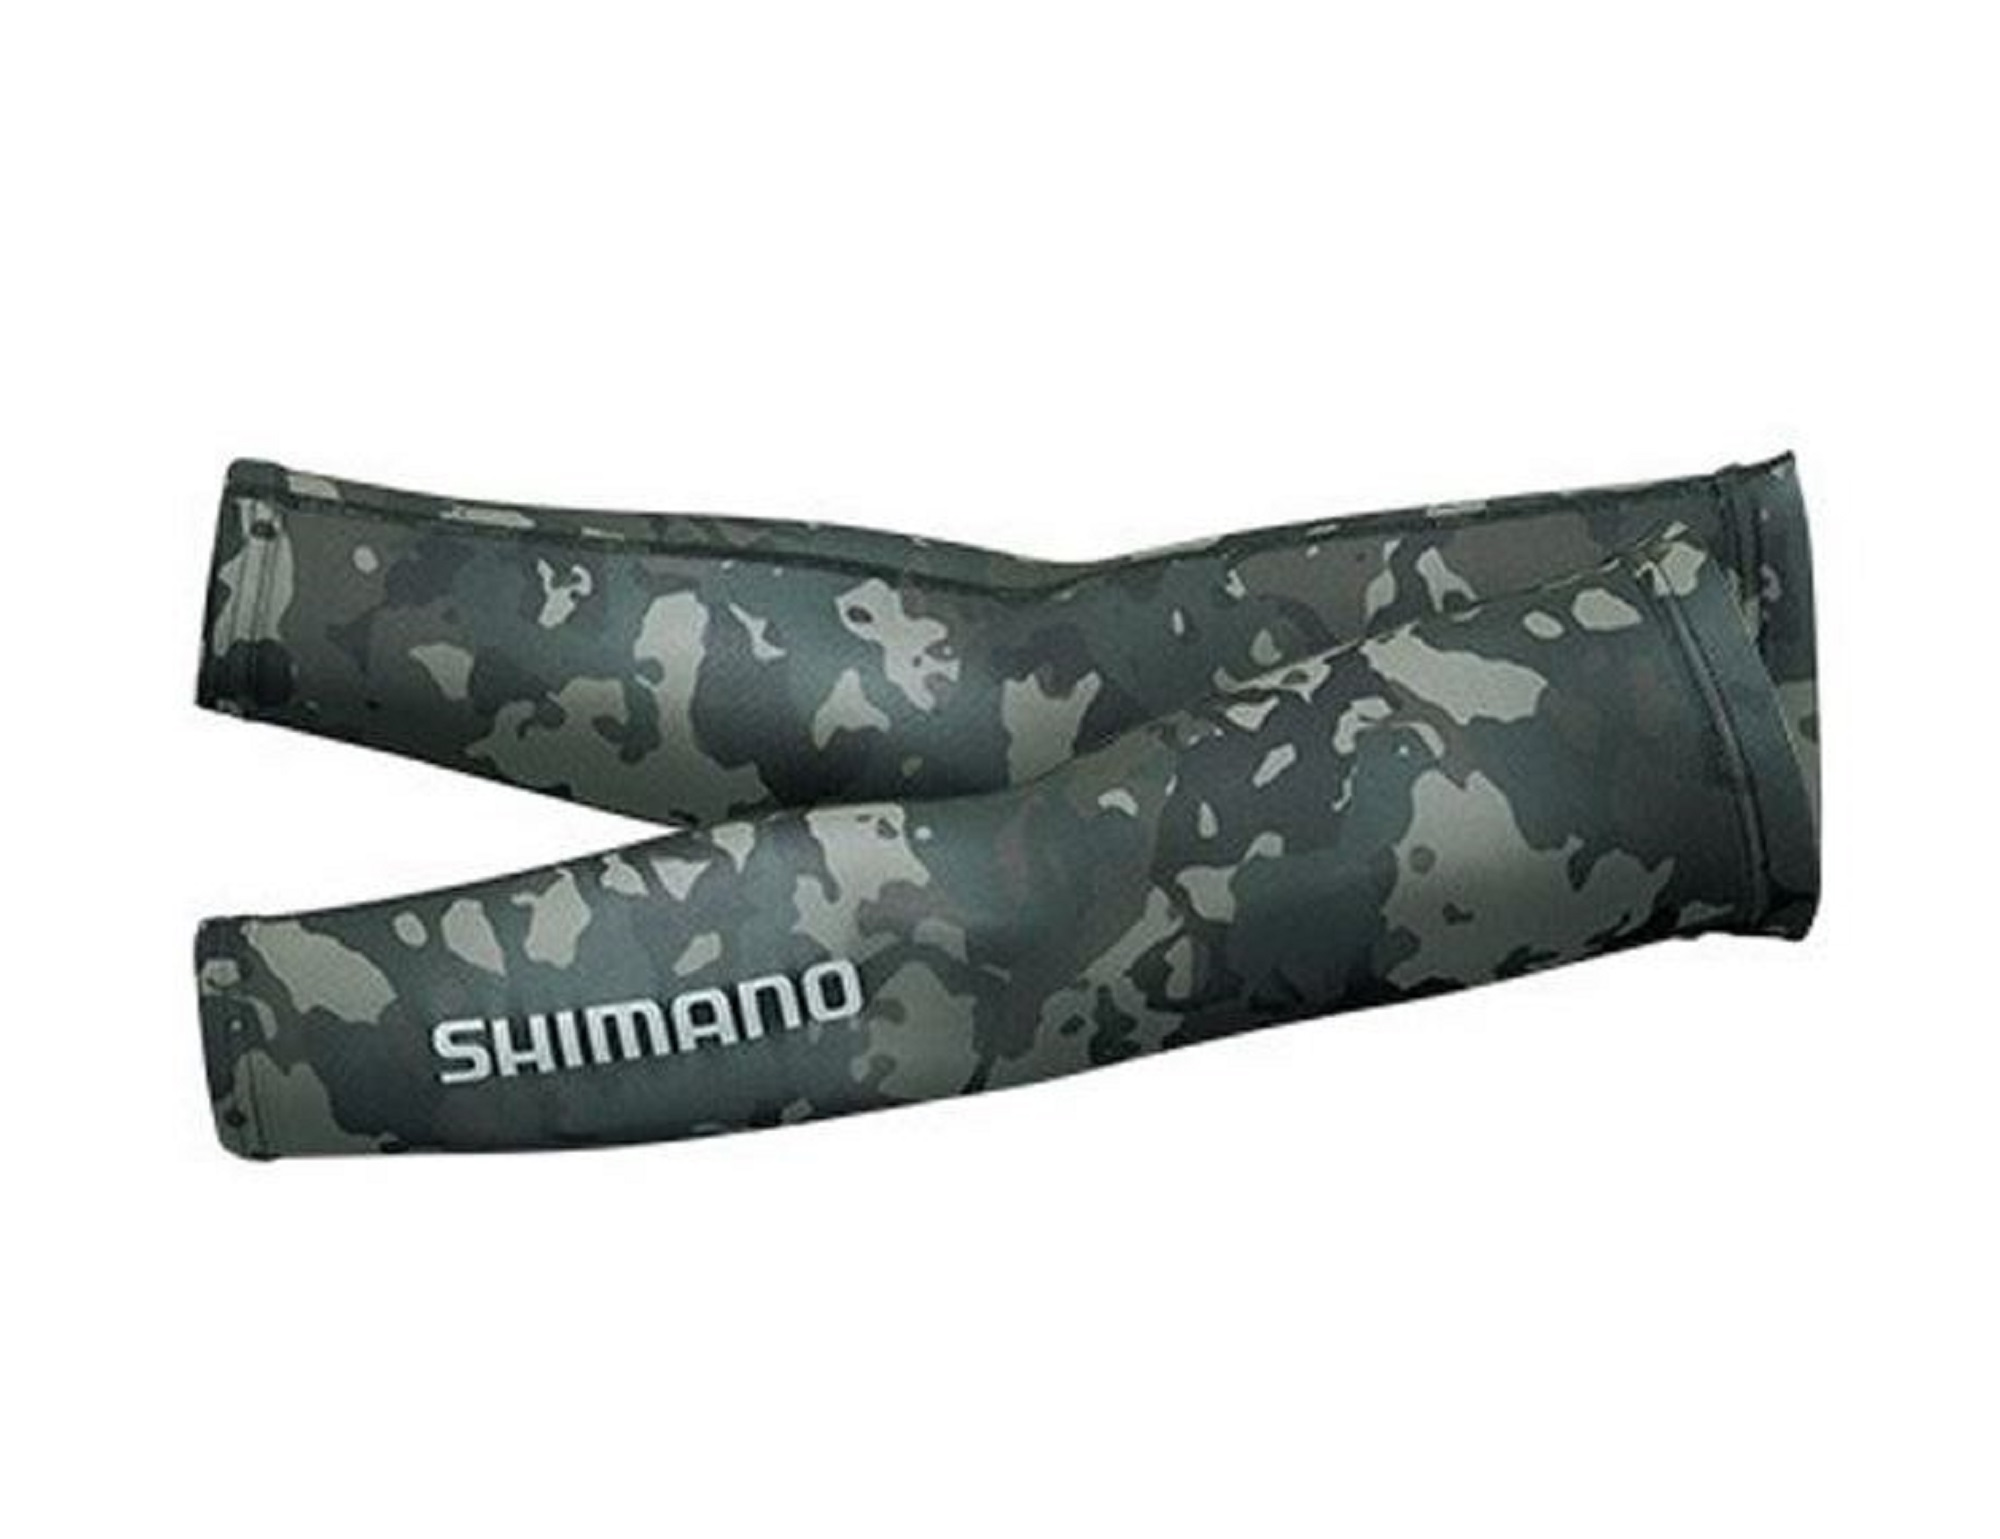 Shimano AC-067Q Arm Sleeves Black Camo Free Size 630650